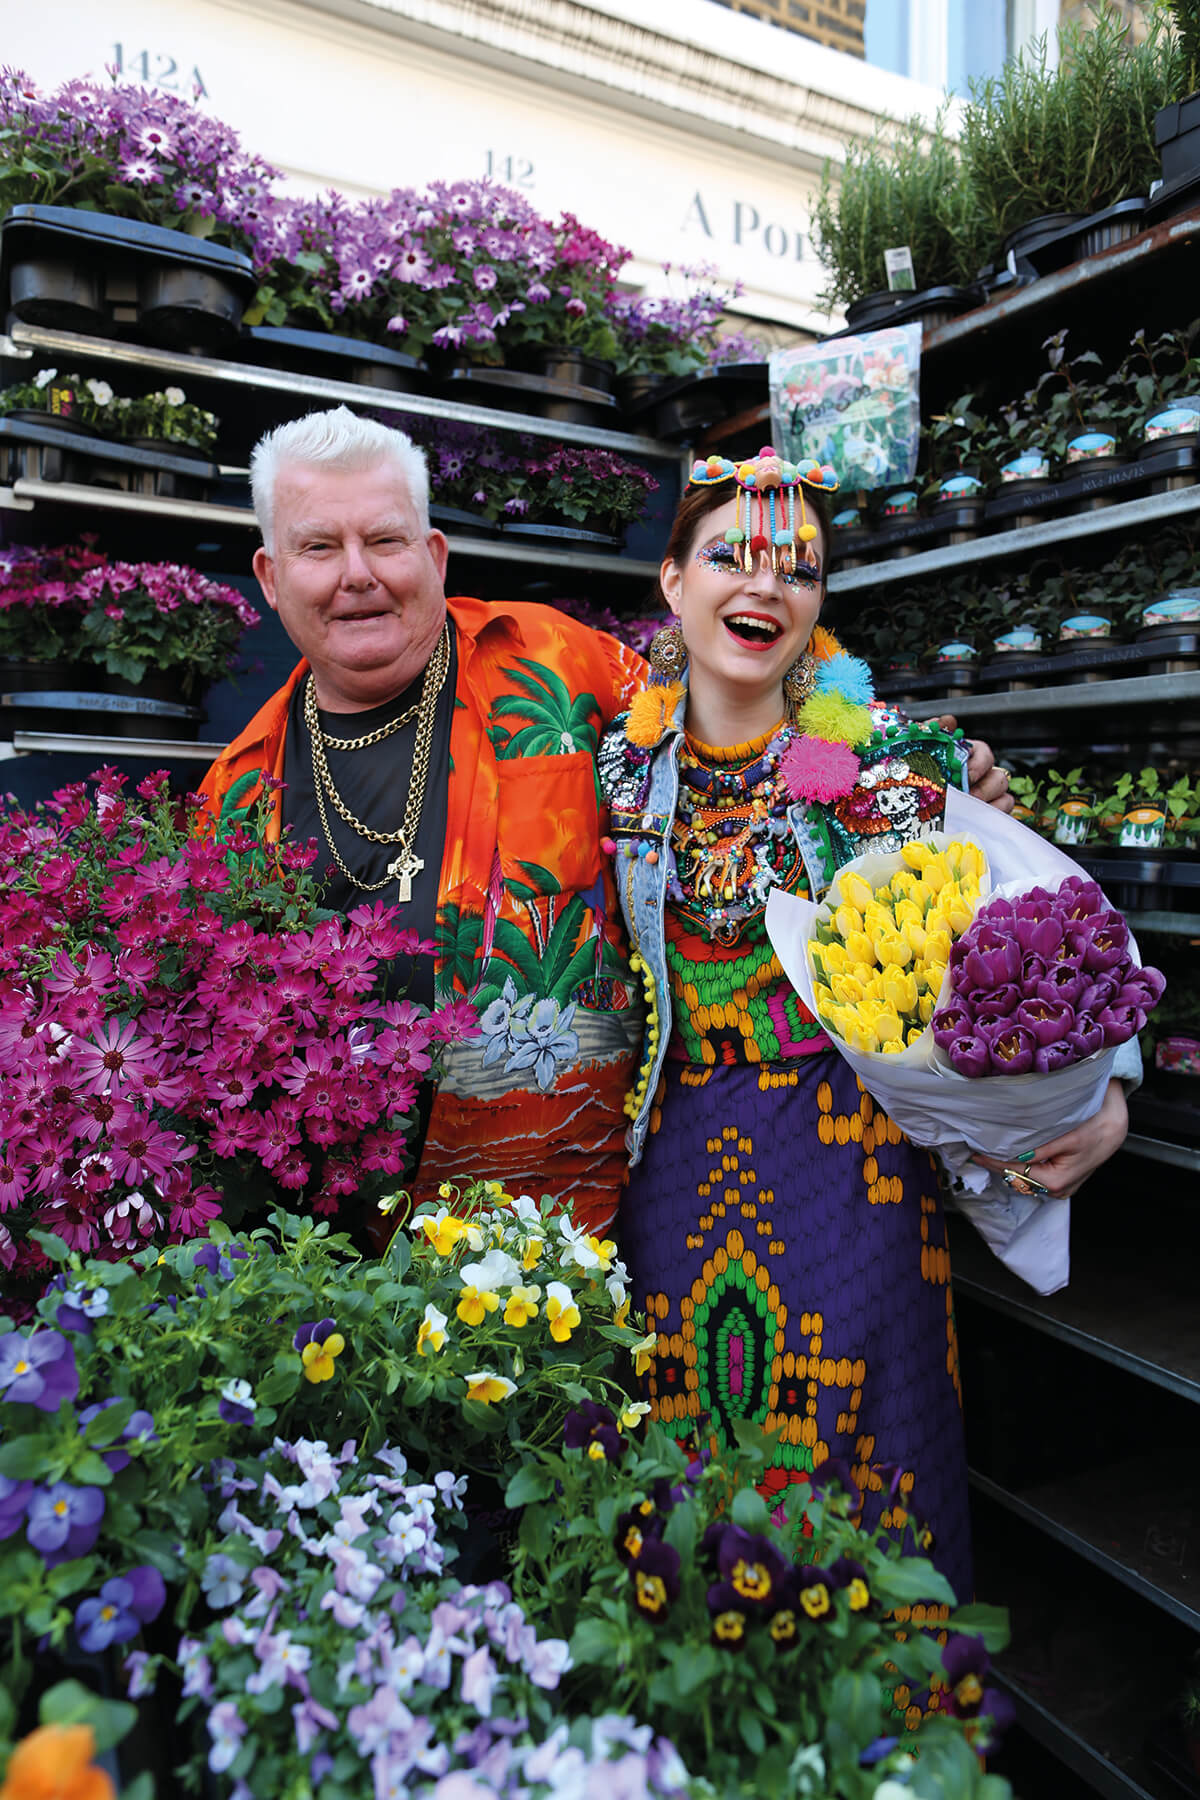 Designer Anne Sophie Cochevelou pictured in flower market holding a bunch of colourful flowers